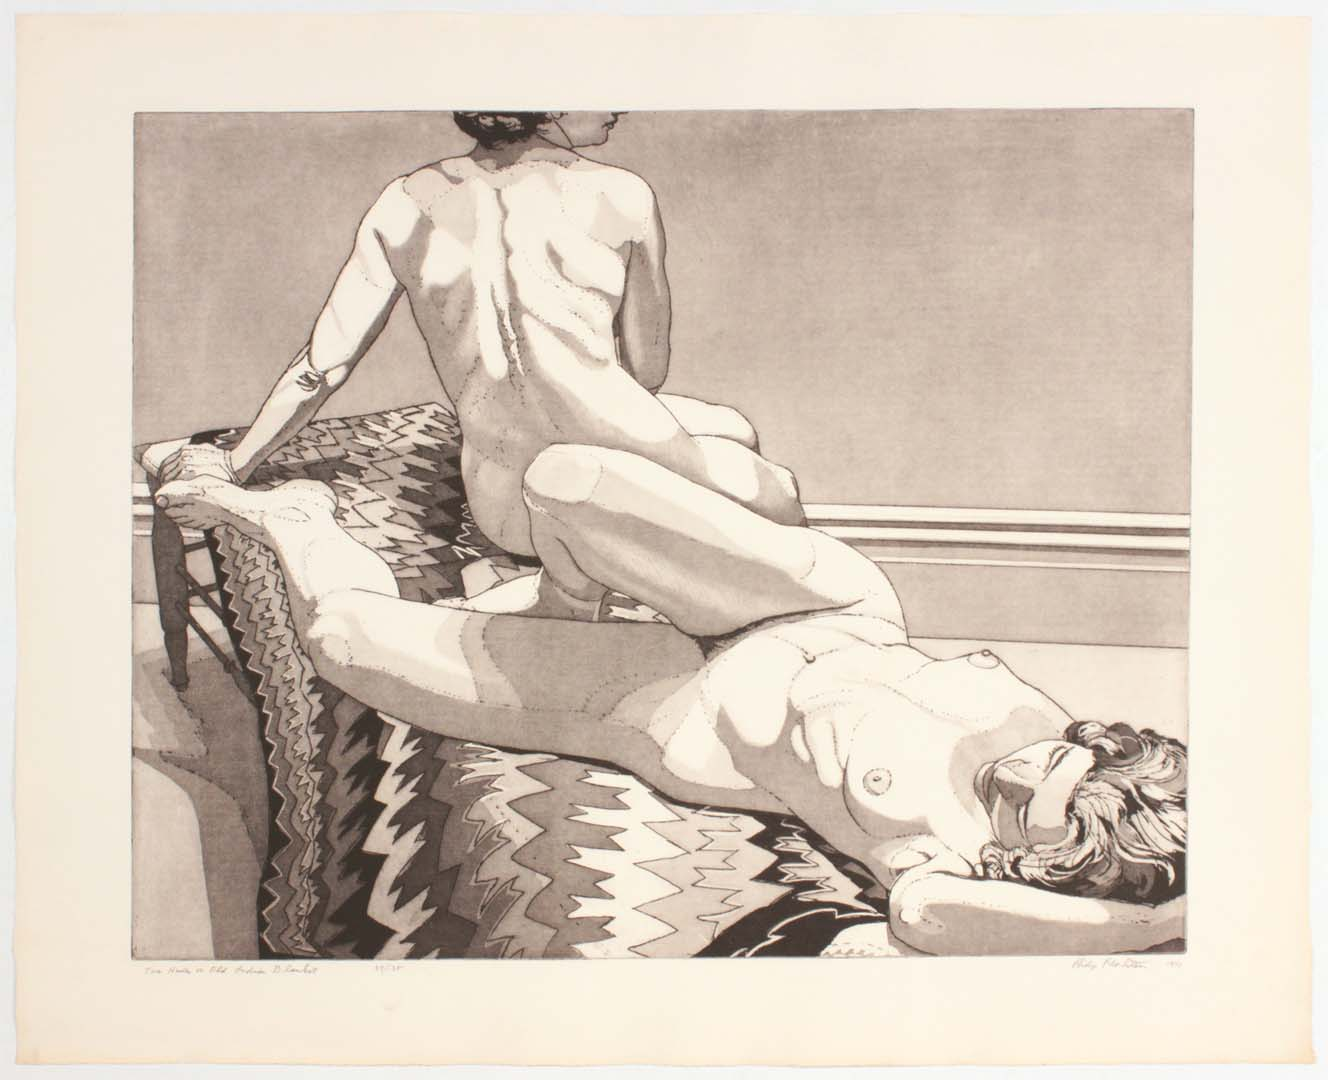 1971 Two Nudes on Old Indian Rug Aquatint Etching on Paper 29.5 x 26.25